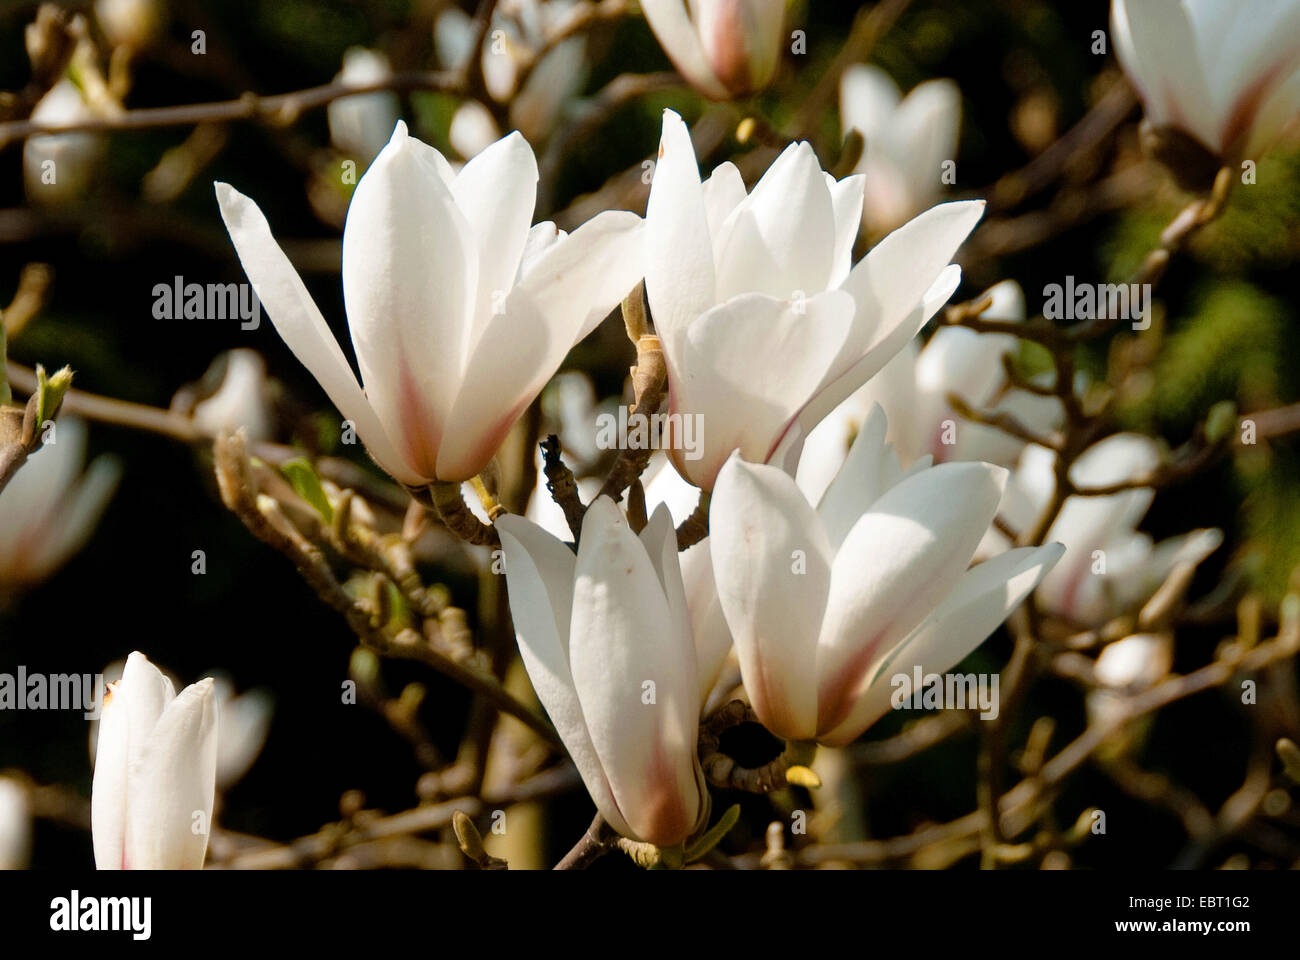 Huangshan Magnolia Magnolia Cylindrica Flowers Stock Photo